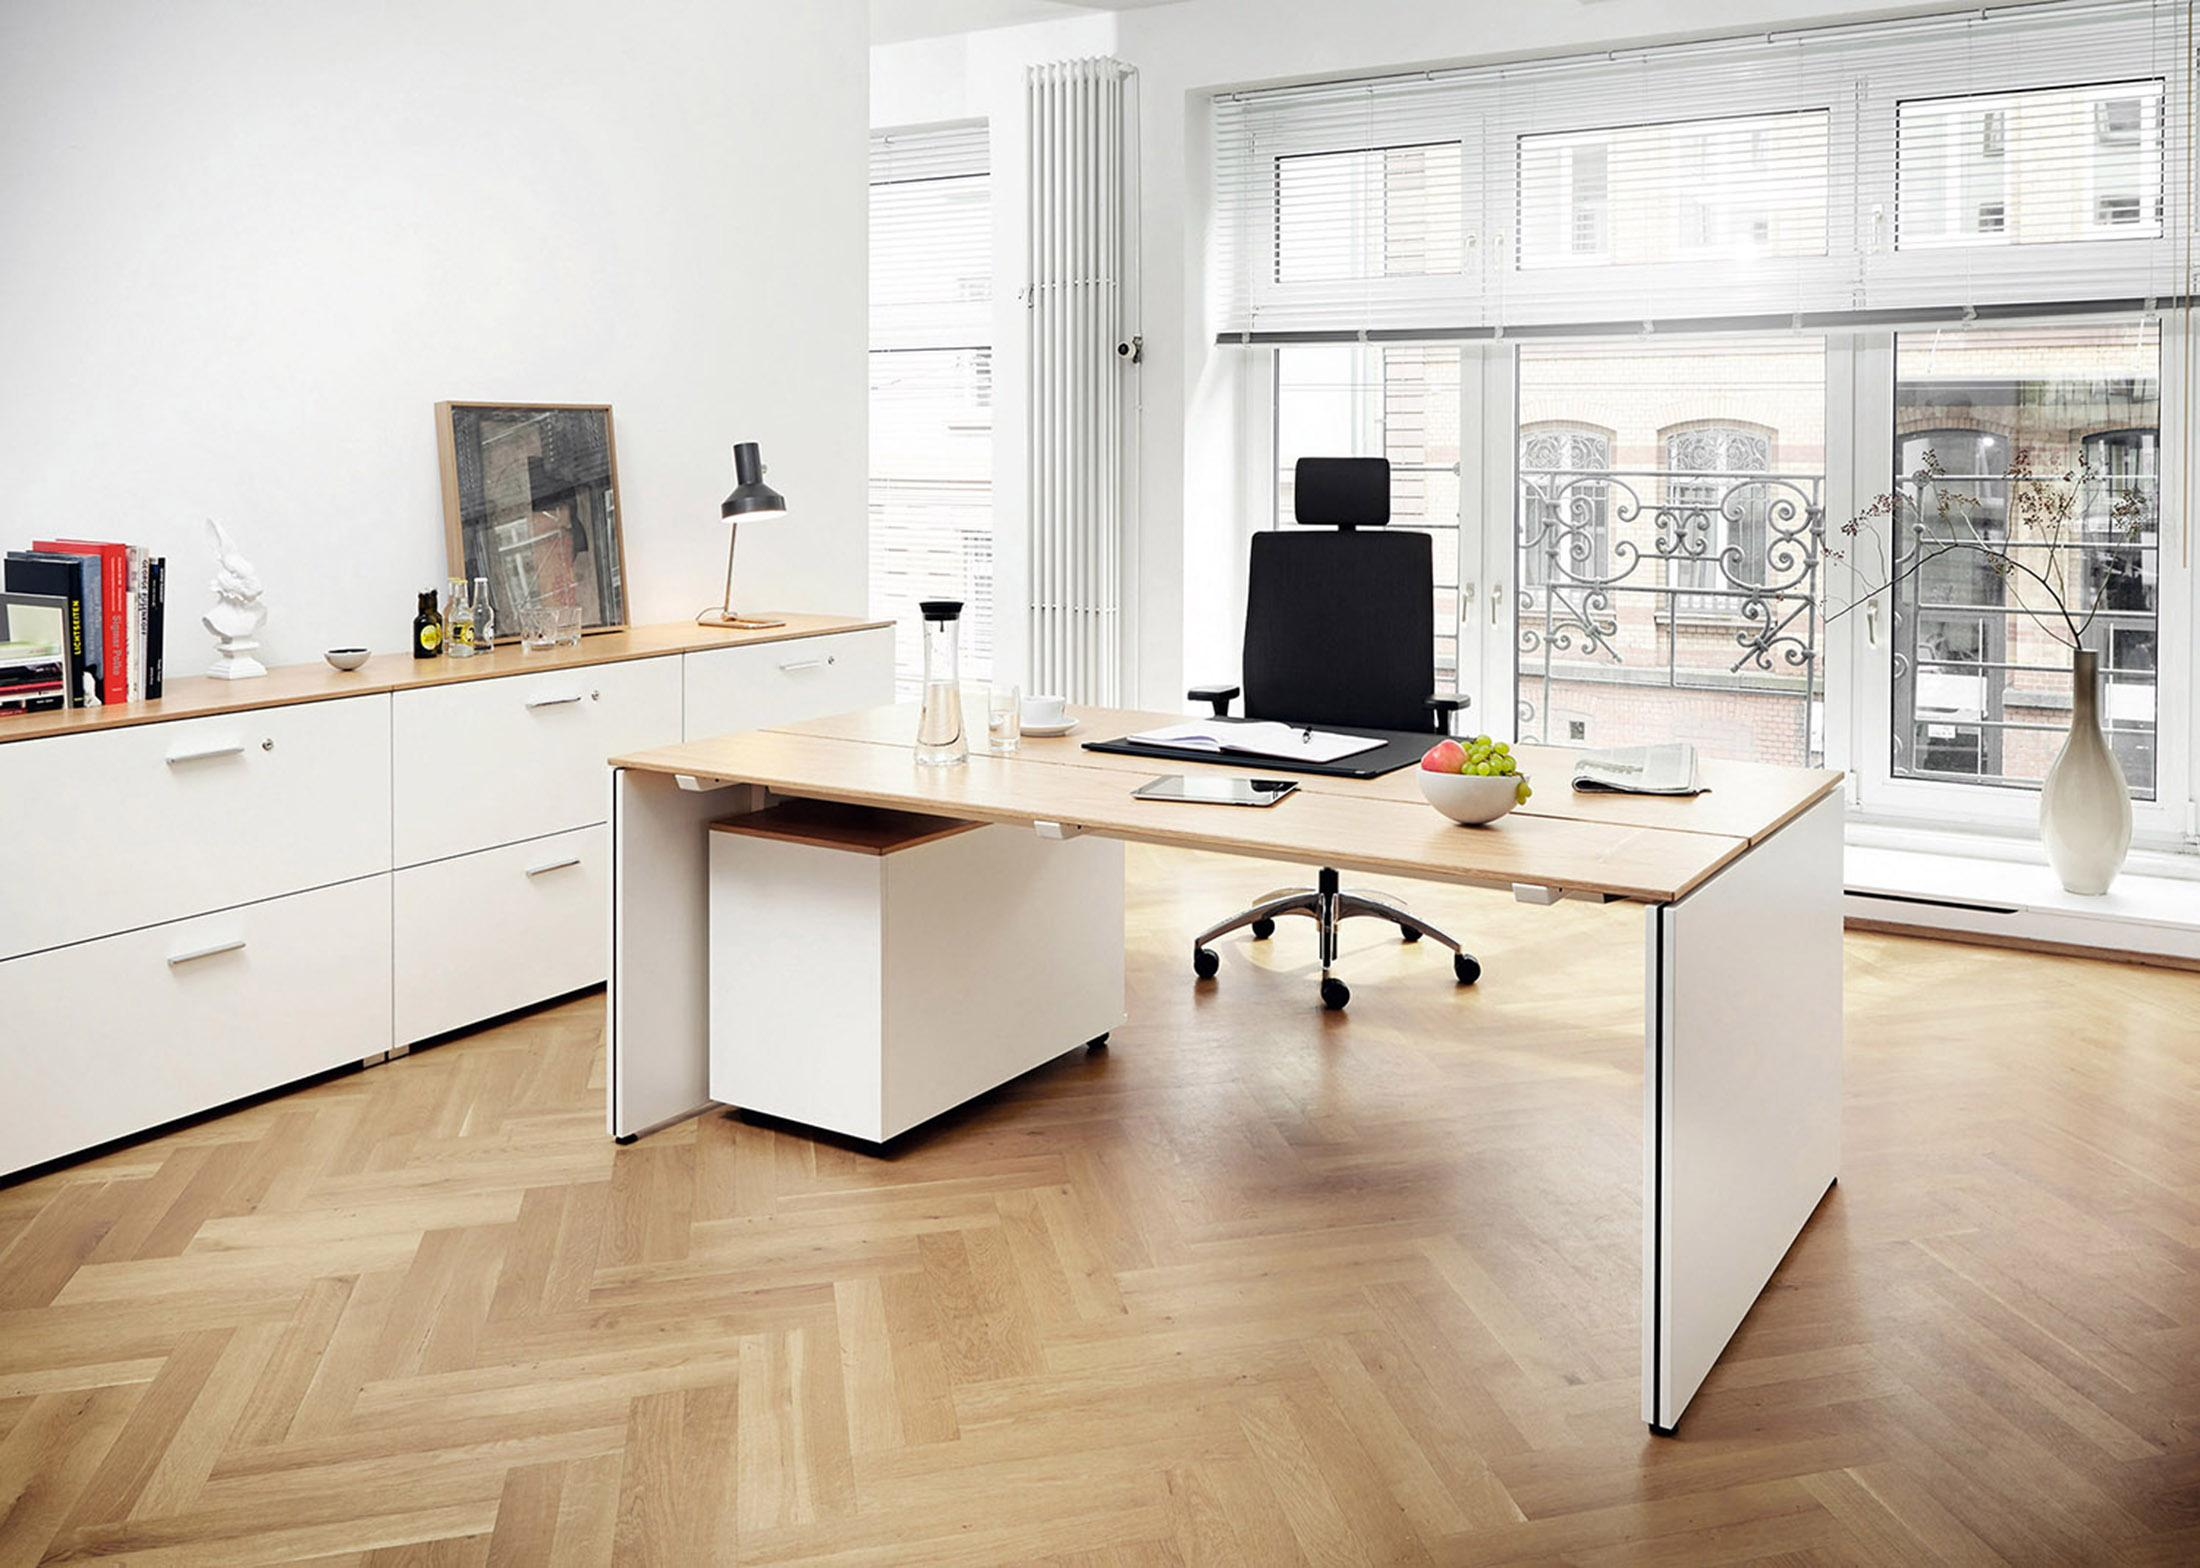 modernes b ro b ro schreibtisch arbeitszimmer zi. Black Bedroom Furniture Sets. Home Design Ideas